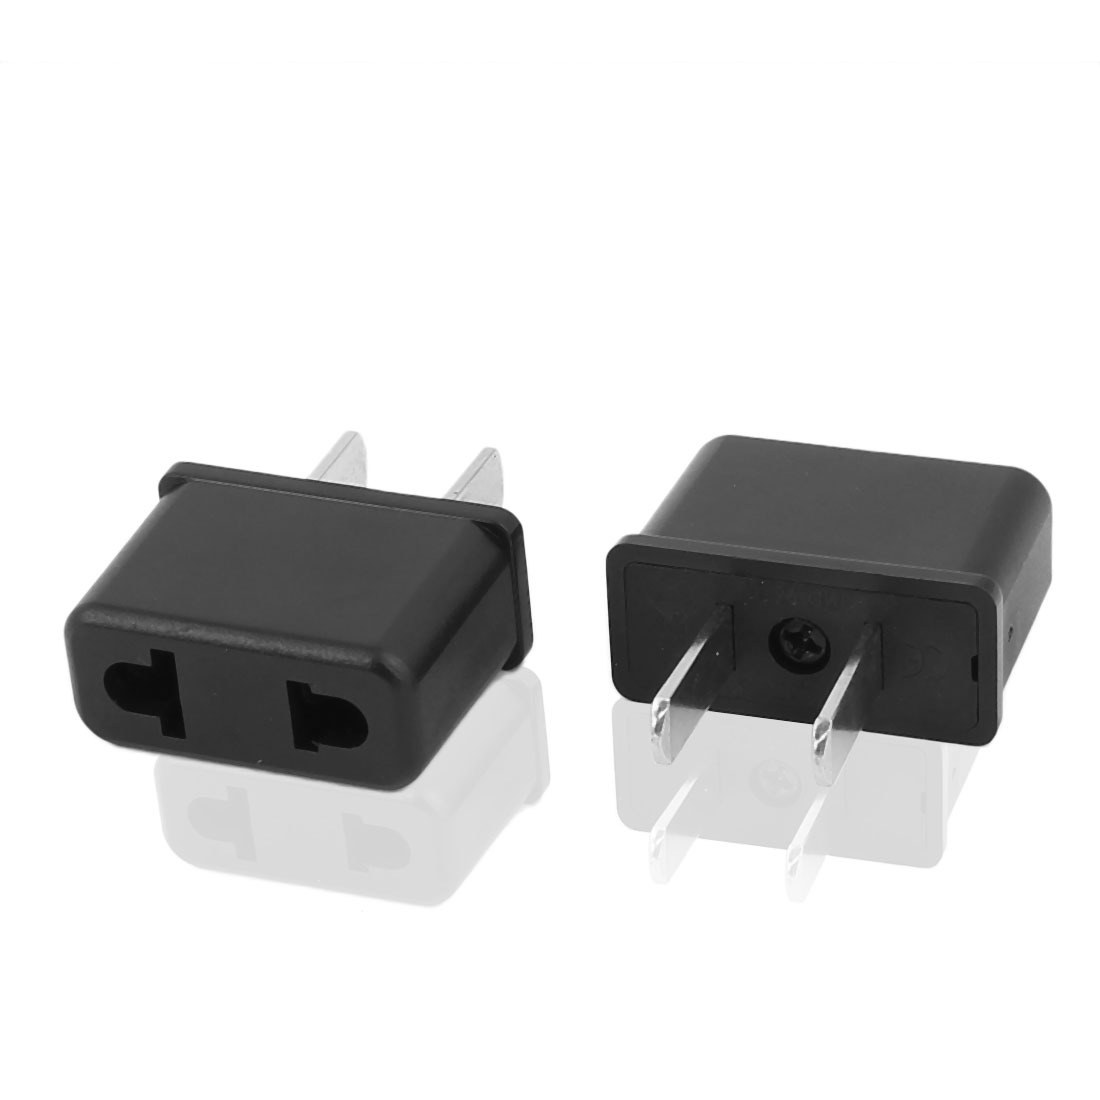 2 Pcs AC 125V 250V US Plug to US EU Socket Converter Power Adapter for RC Quadcopter Black